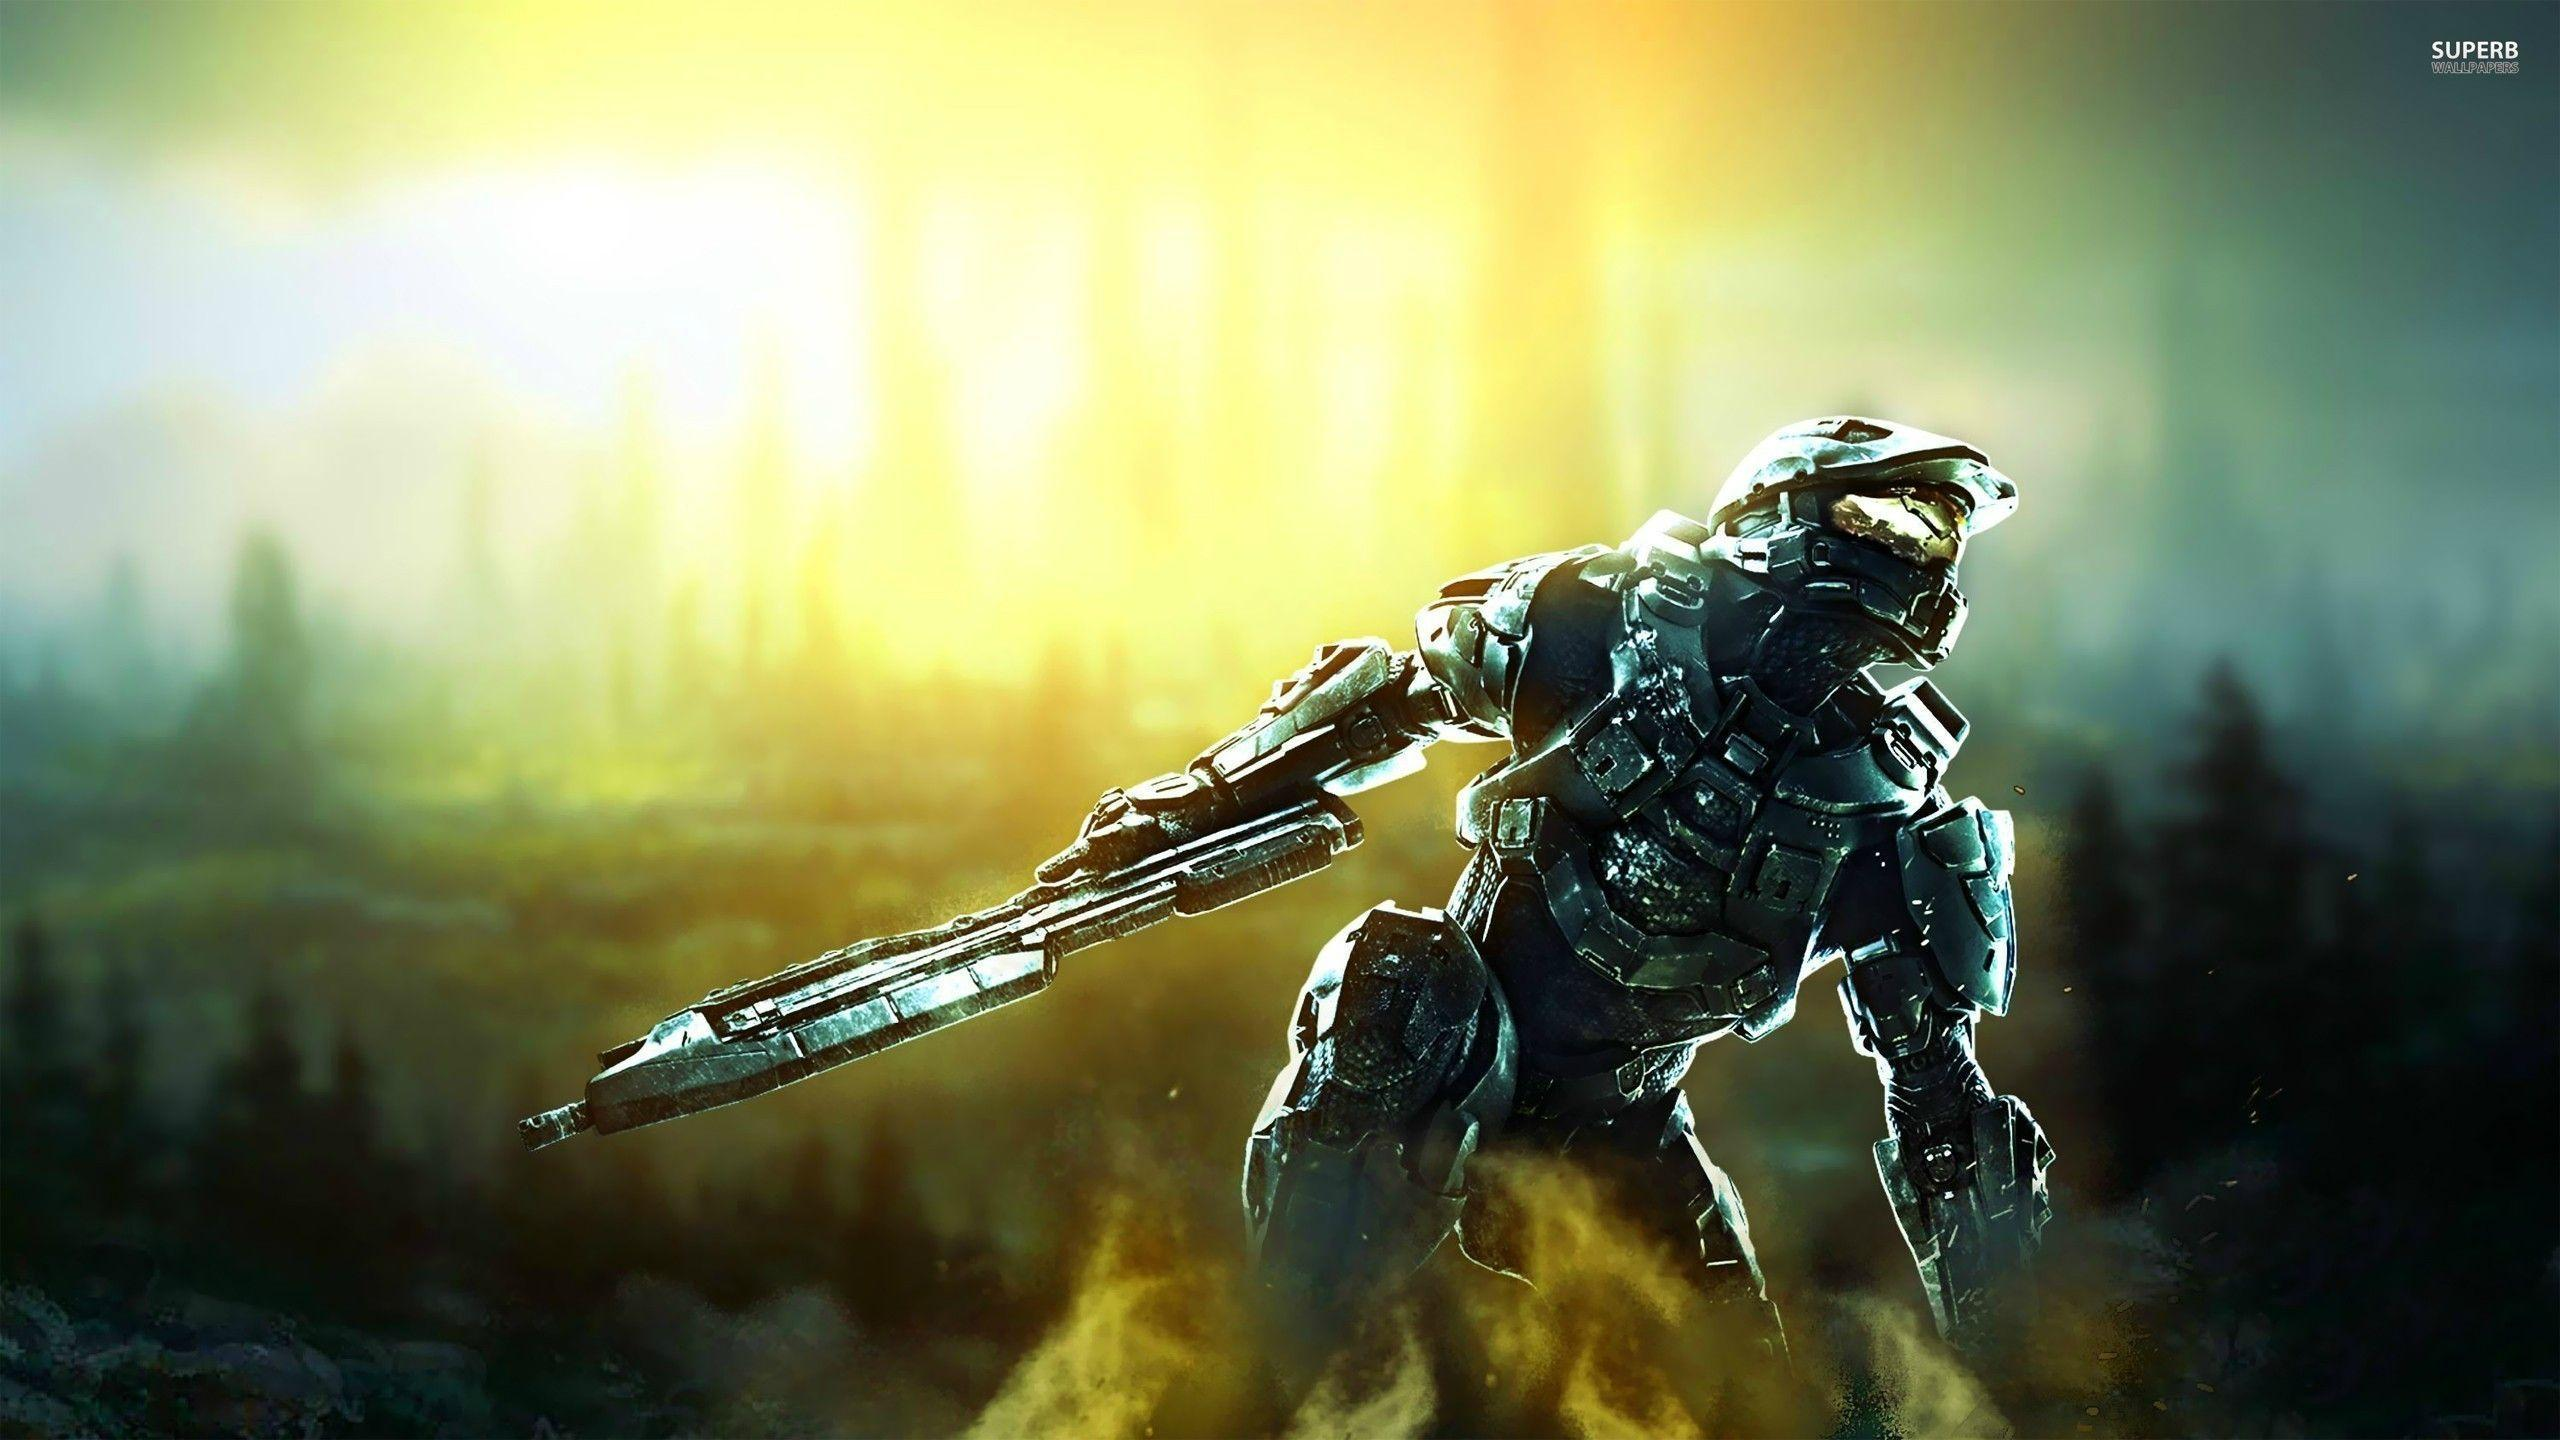 High Resolution Gaming Wallpapers: Halo 4 Wallpapers 2560x1440